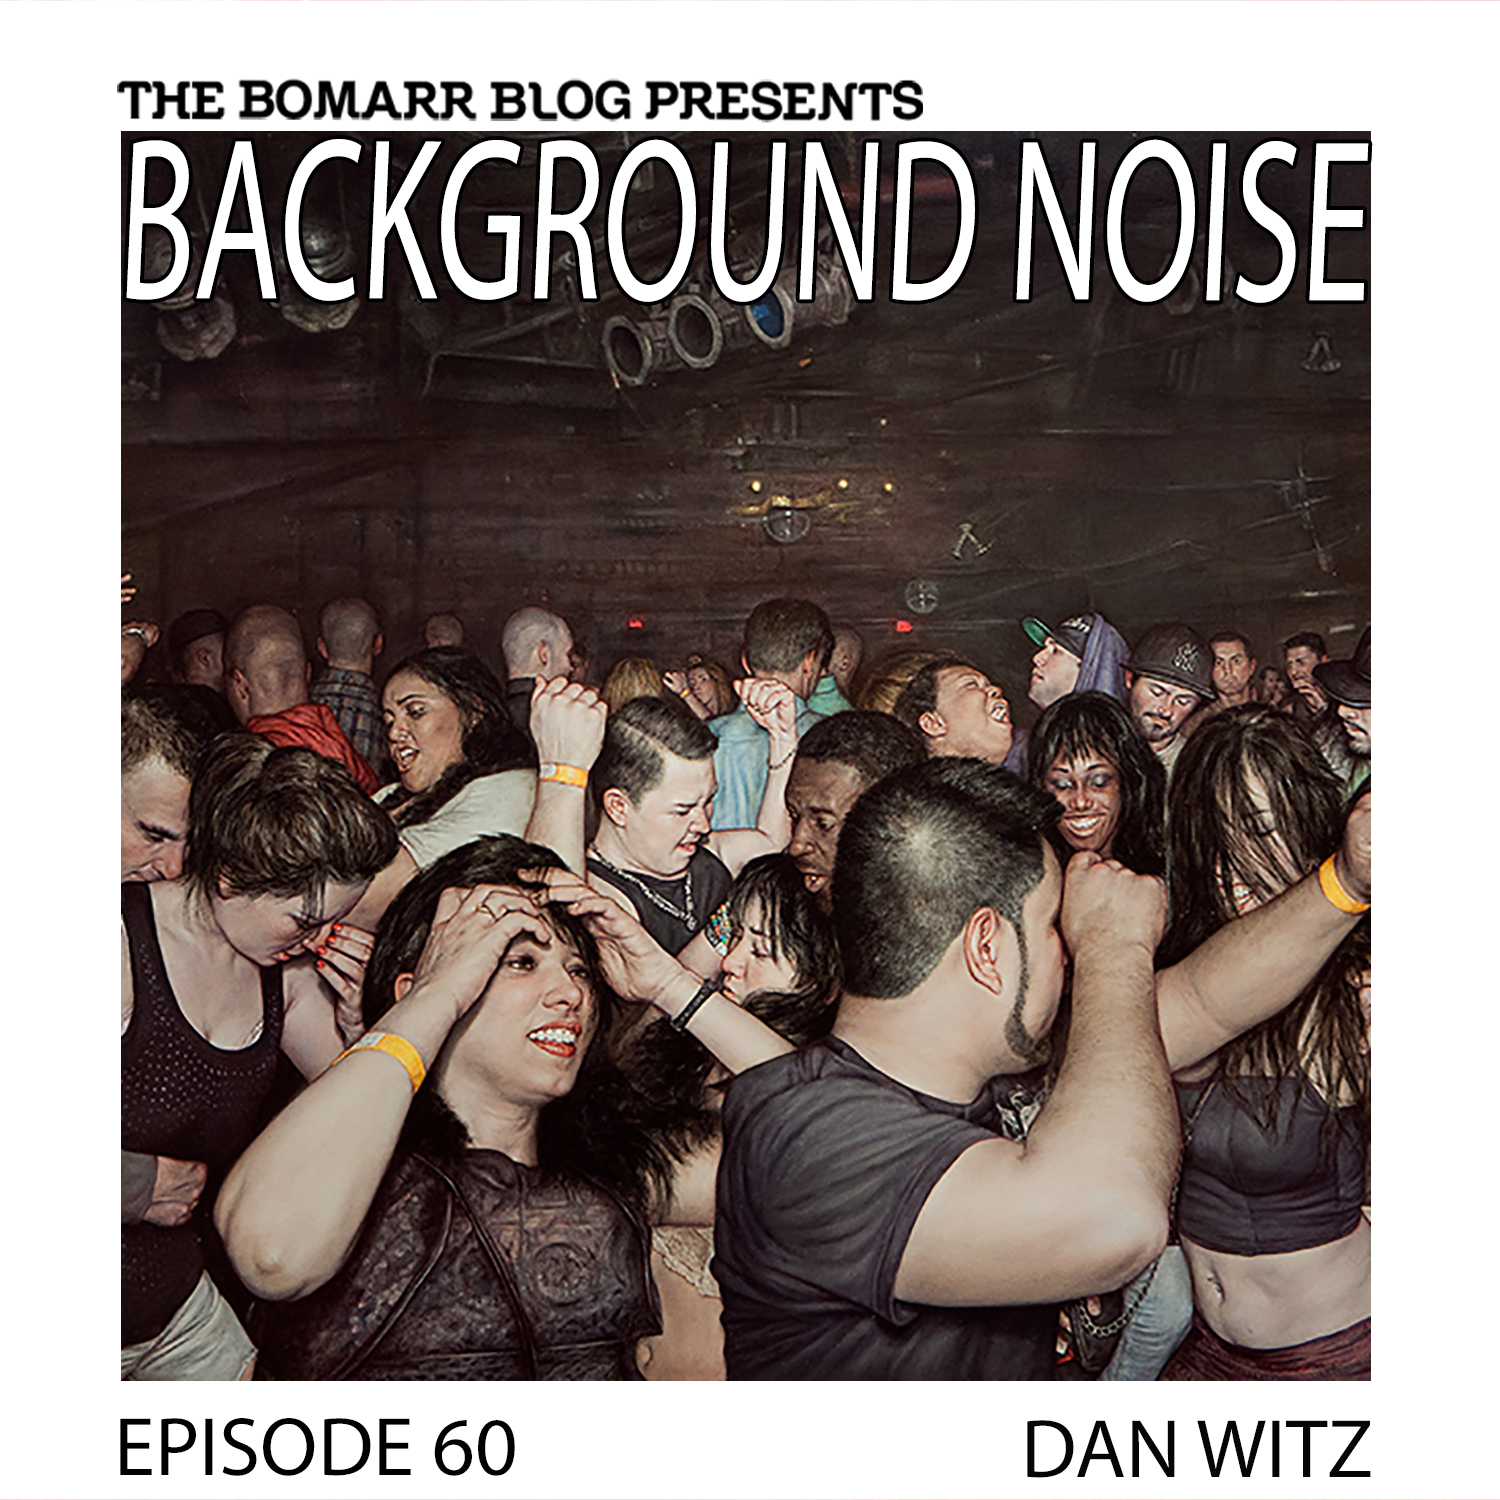 THE BACKGROUND NOISE PODCAST SERIES FOCUSES ON THE MUSIC THAT ARTISTS LISTEN TO WHEN THEY WORK, WHAT MUSIC INSPIRES THEM, OR JUST MUSIC THEY LIKE. THIS WEEK, IN EPISODE 60, the focus is on artist DAN WITZ